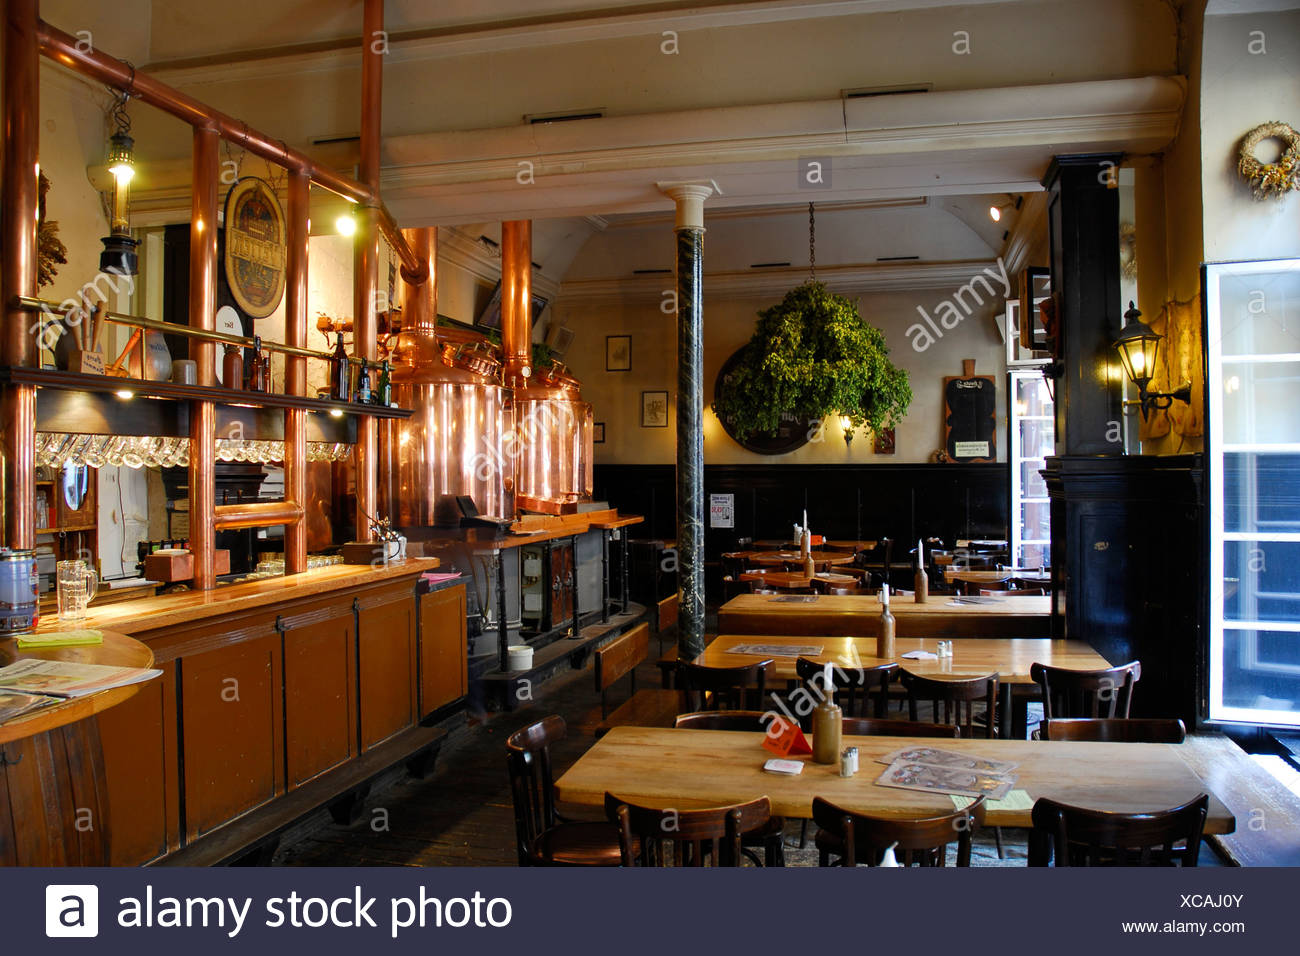 Vetter stock photos images alamy